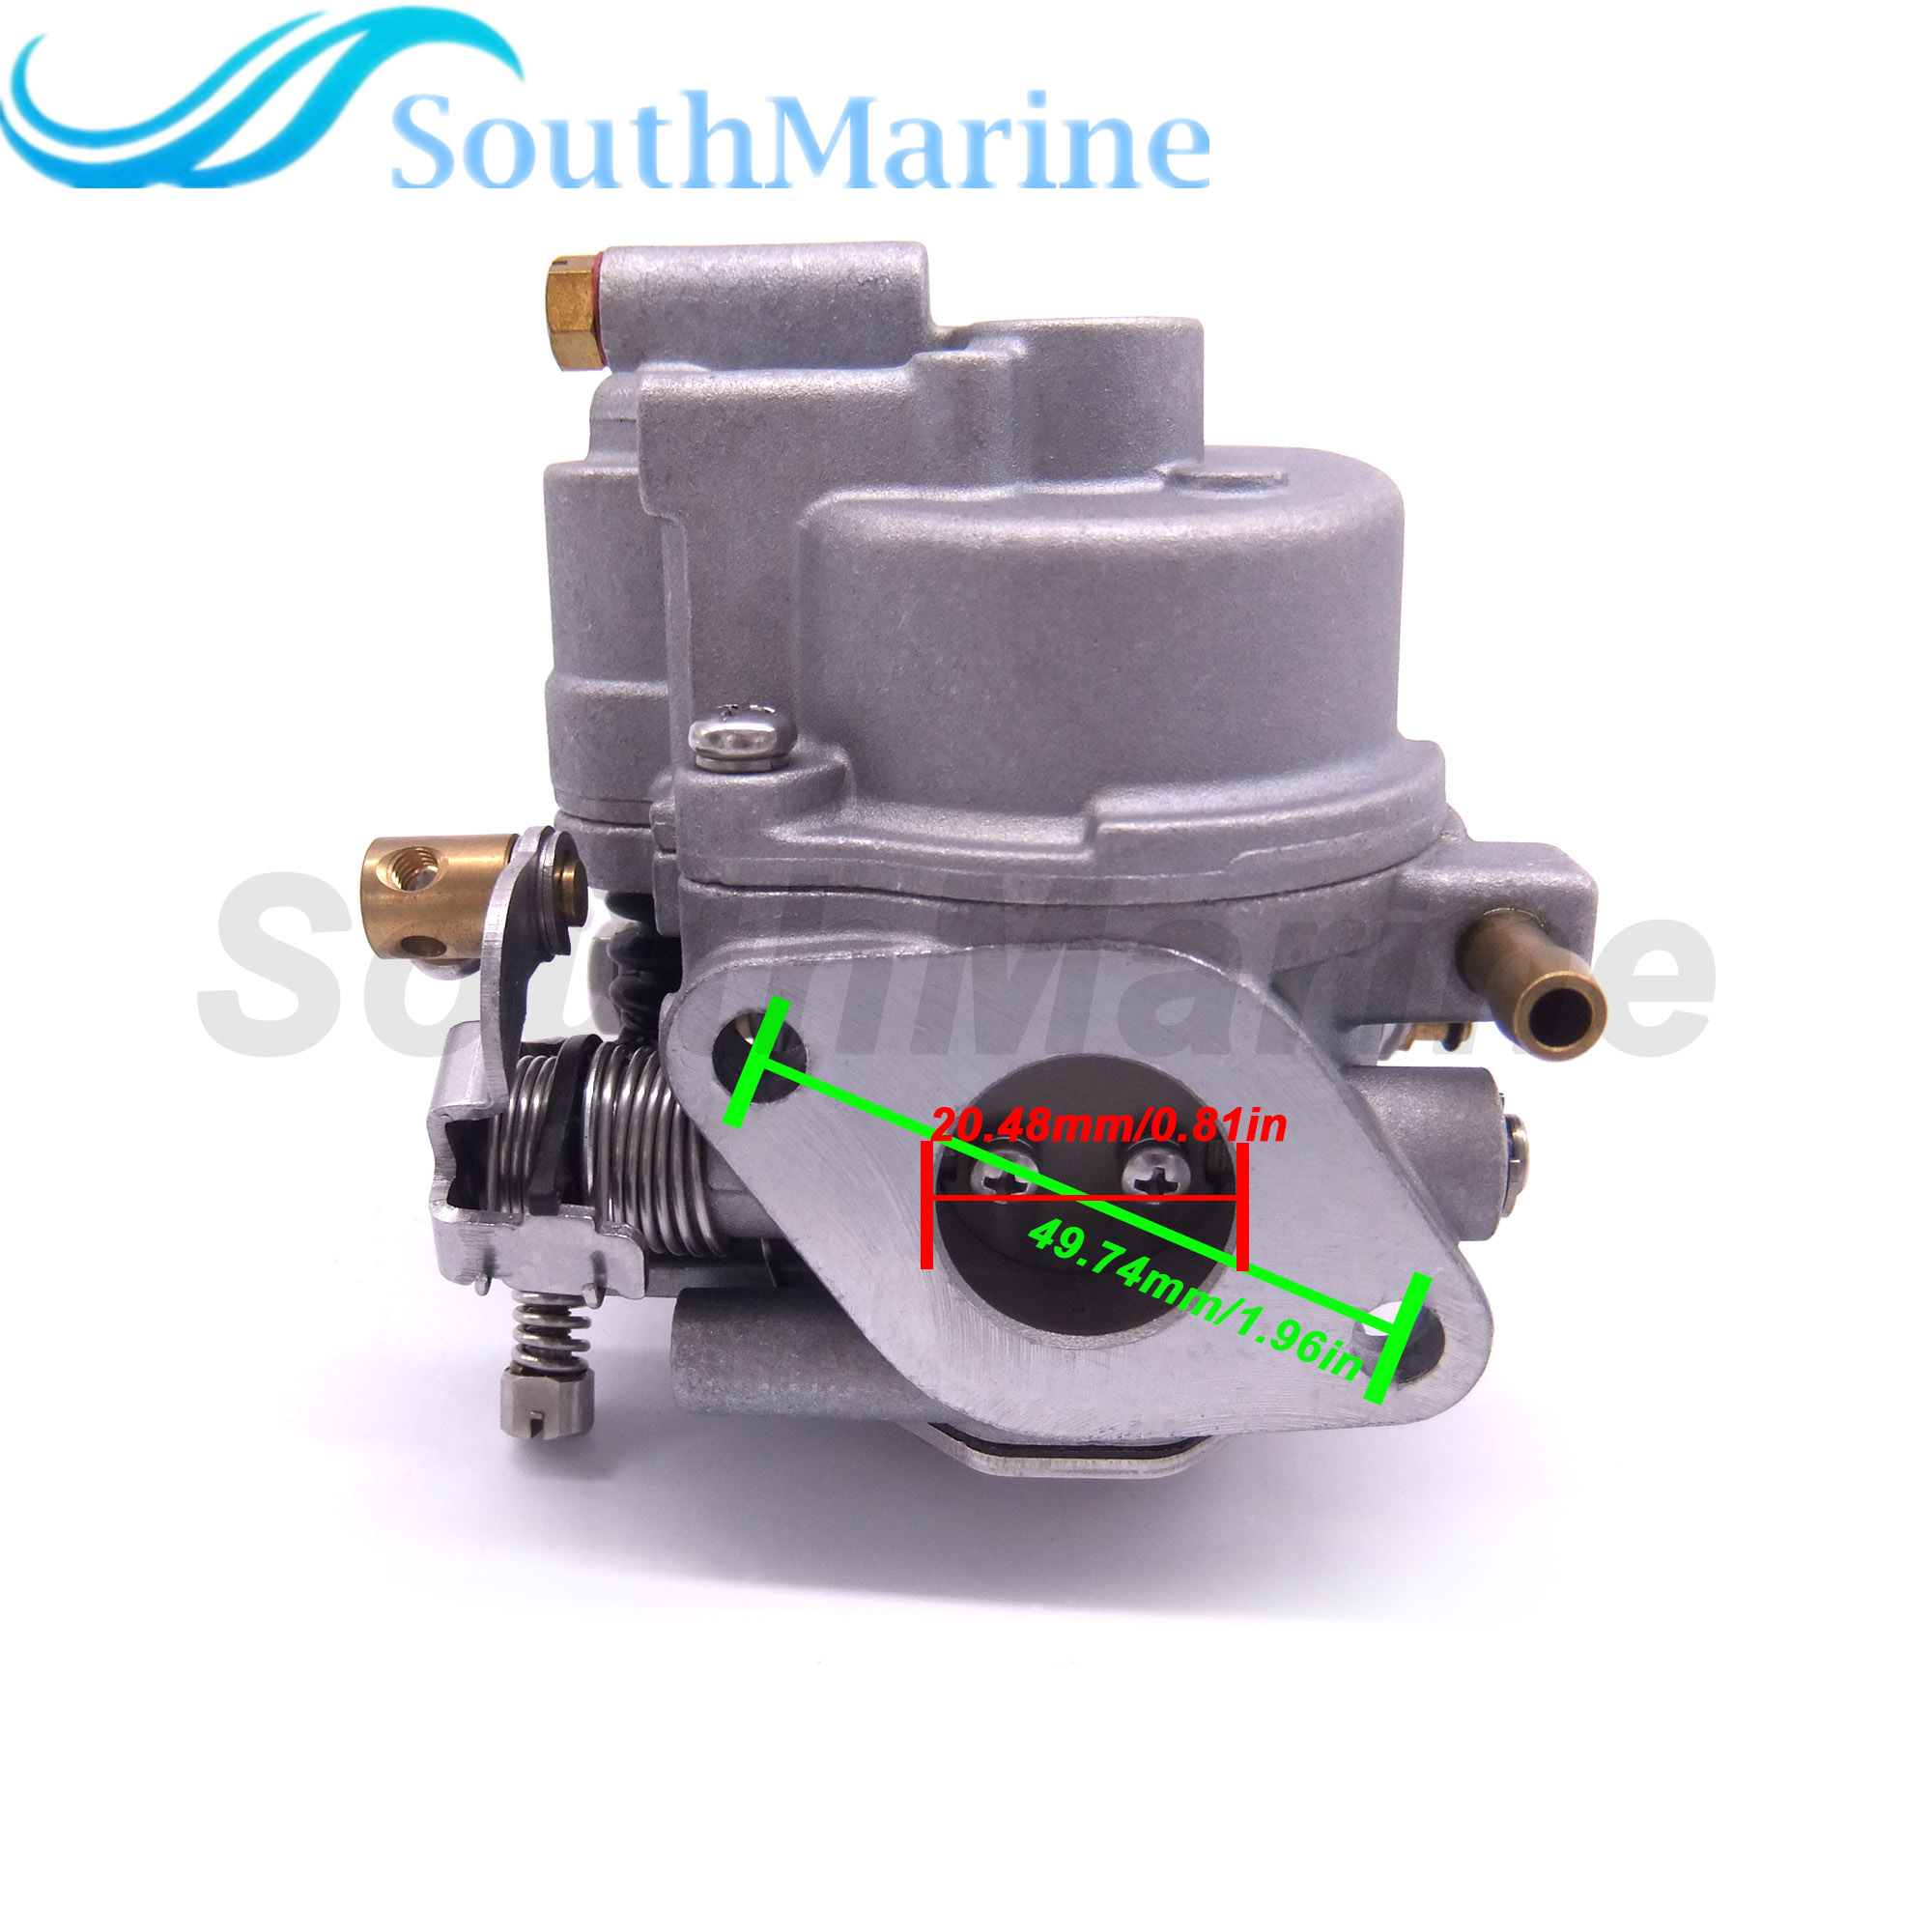 6AU-14301-40 6AU-14301-41 Outboard Engine Carburetor Assy For Yamaha F9.9F T9.9G Boat Motor, Electric Start